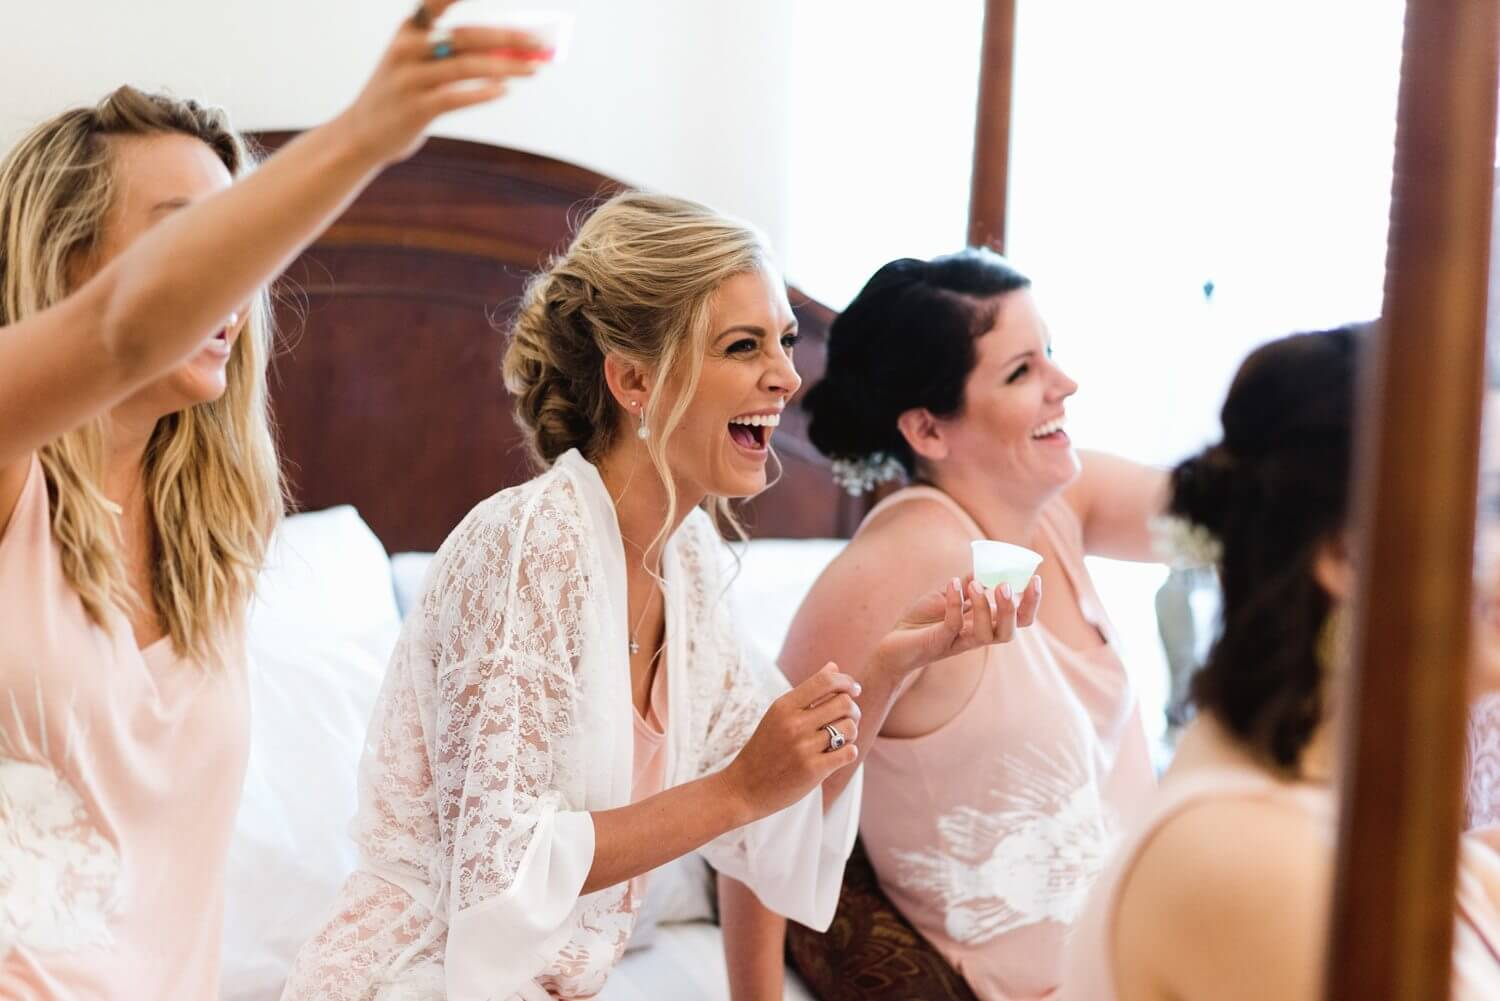 Freas Photography Southernmost House Wedding 33 - Boho Styled Key West Wedding at the Southernmost House in Key West, Florida